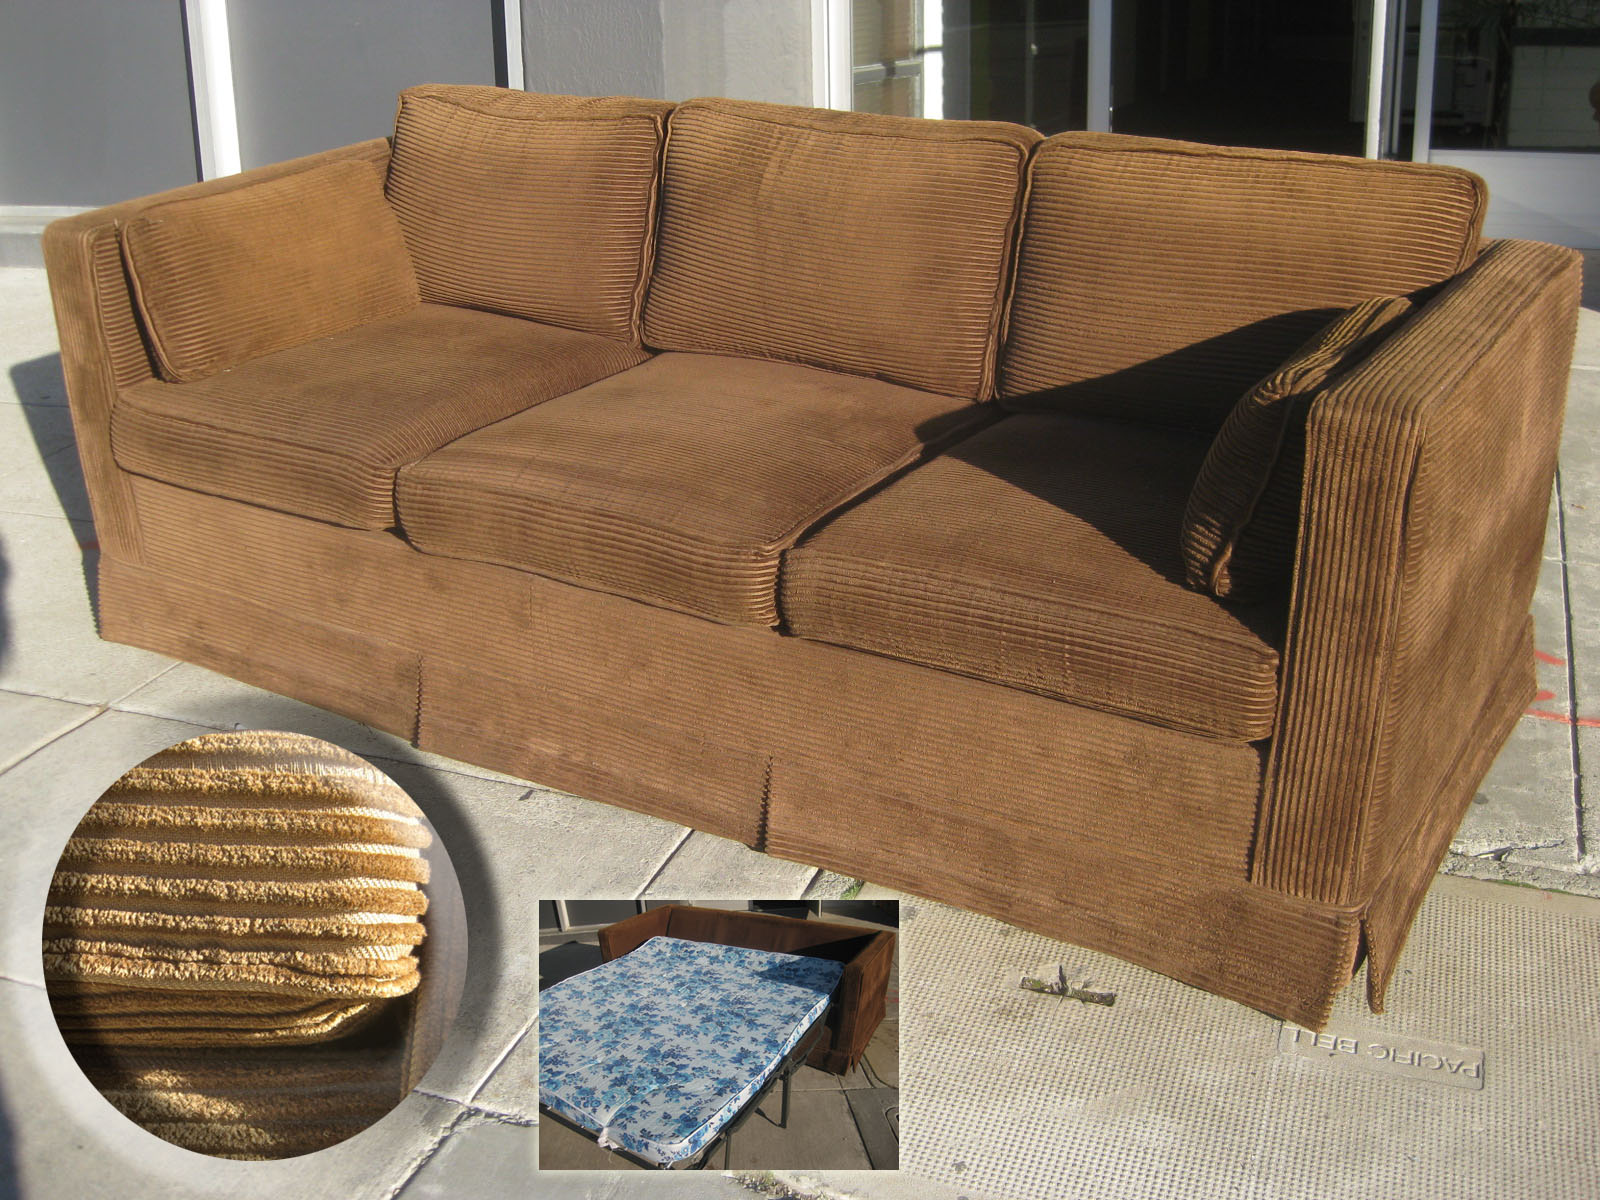 Cool Uhuru Furniture Collectibles Sold Corduroy Sofabed 100 Gmtry Best Dining Table And Chair Ideas Images Gmtryco